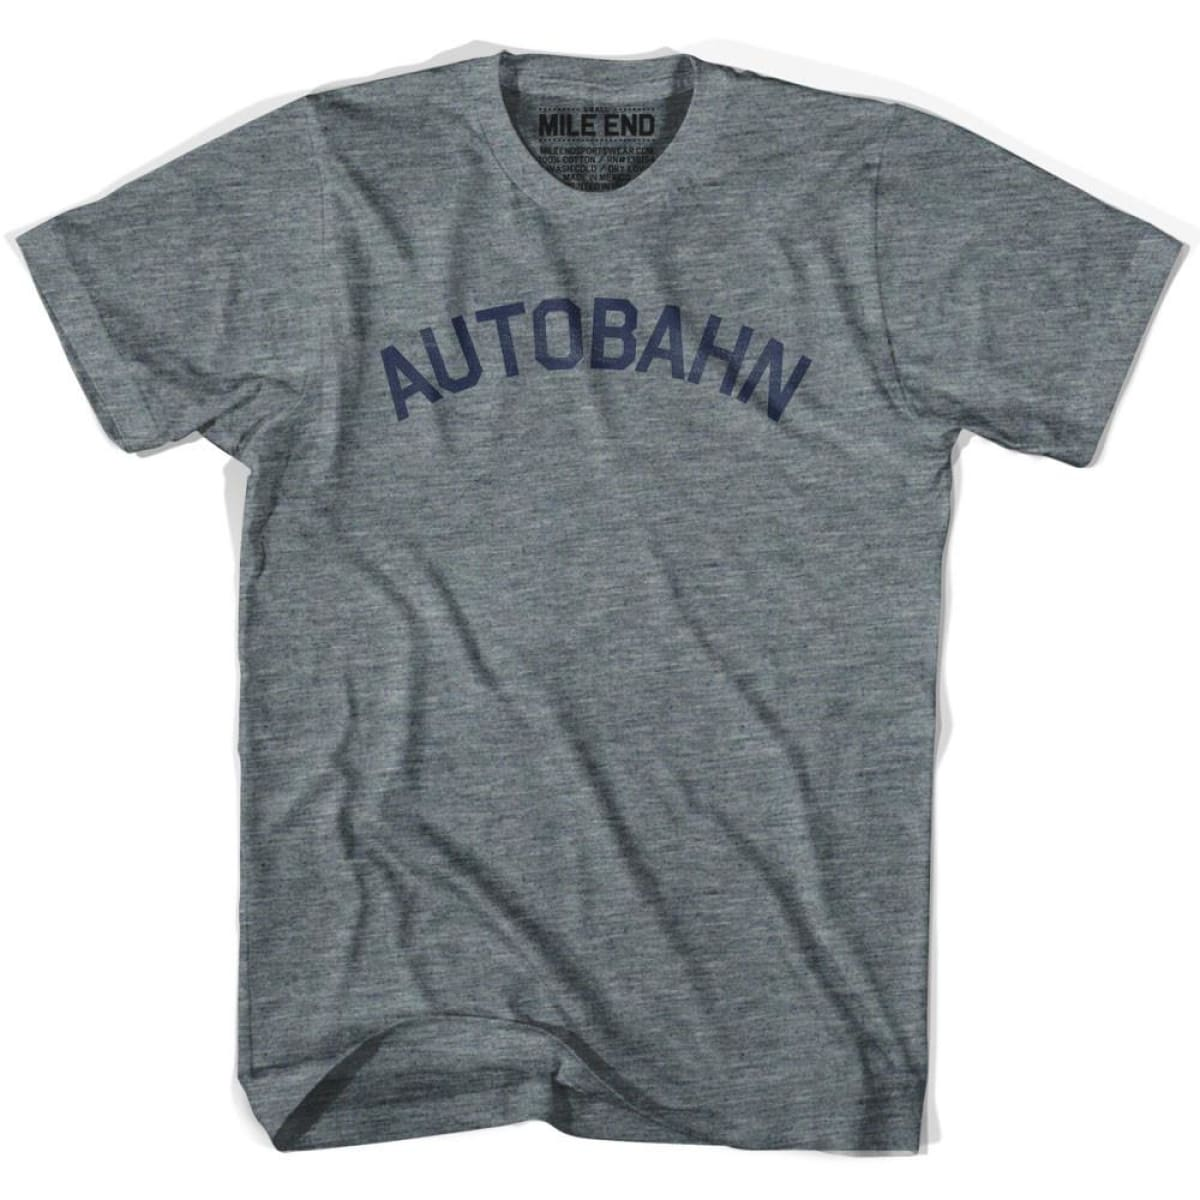 Autobahn City Vintage T-shirt - Athletic Grey / Adult X-Small - Mile End City